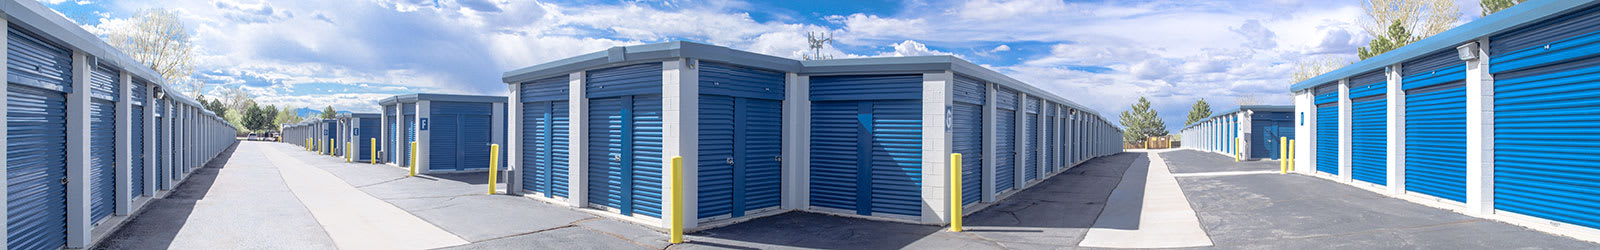 About Security Self Storage